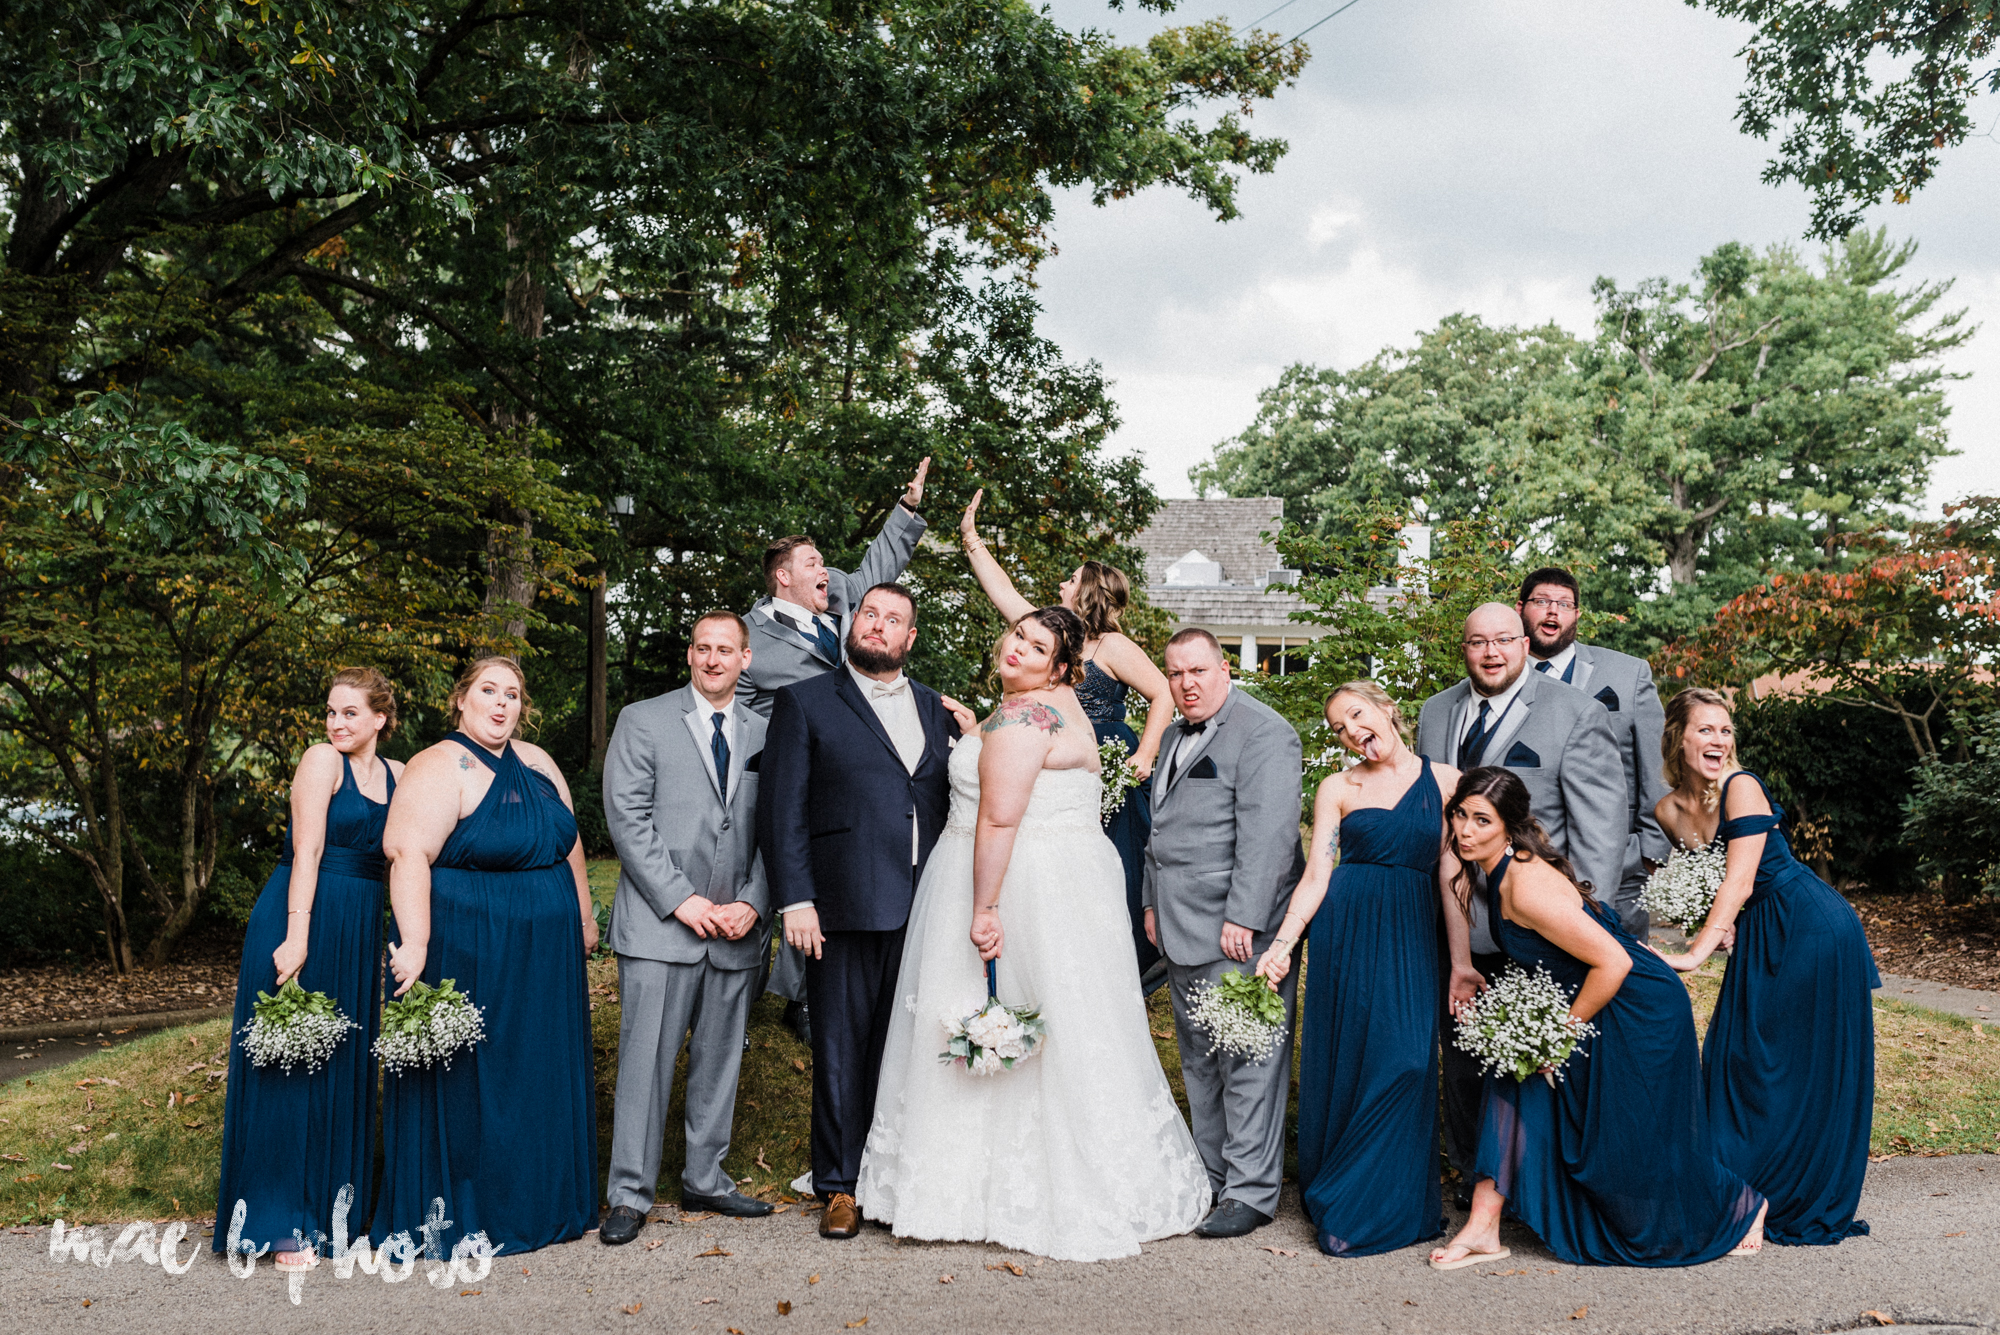 Kristina and ryan's personal vintage glam fall wedding at disalvo's station restaurant and the arnold palmer latrobe country club in latrobe, pa photographed by youngstown wedding photographer mae b photo-52.jpg